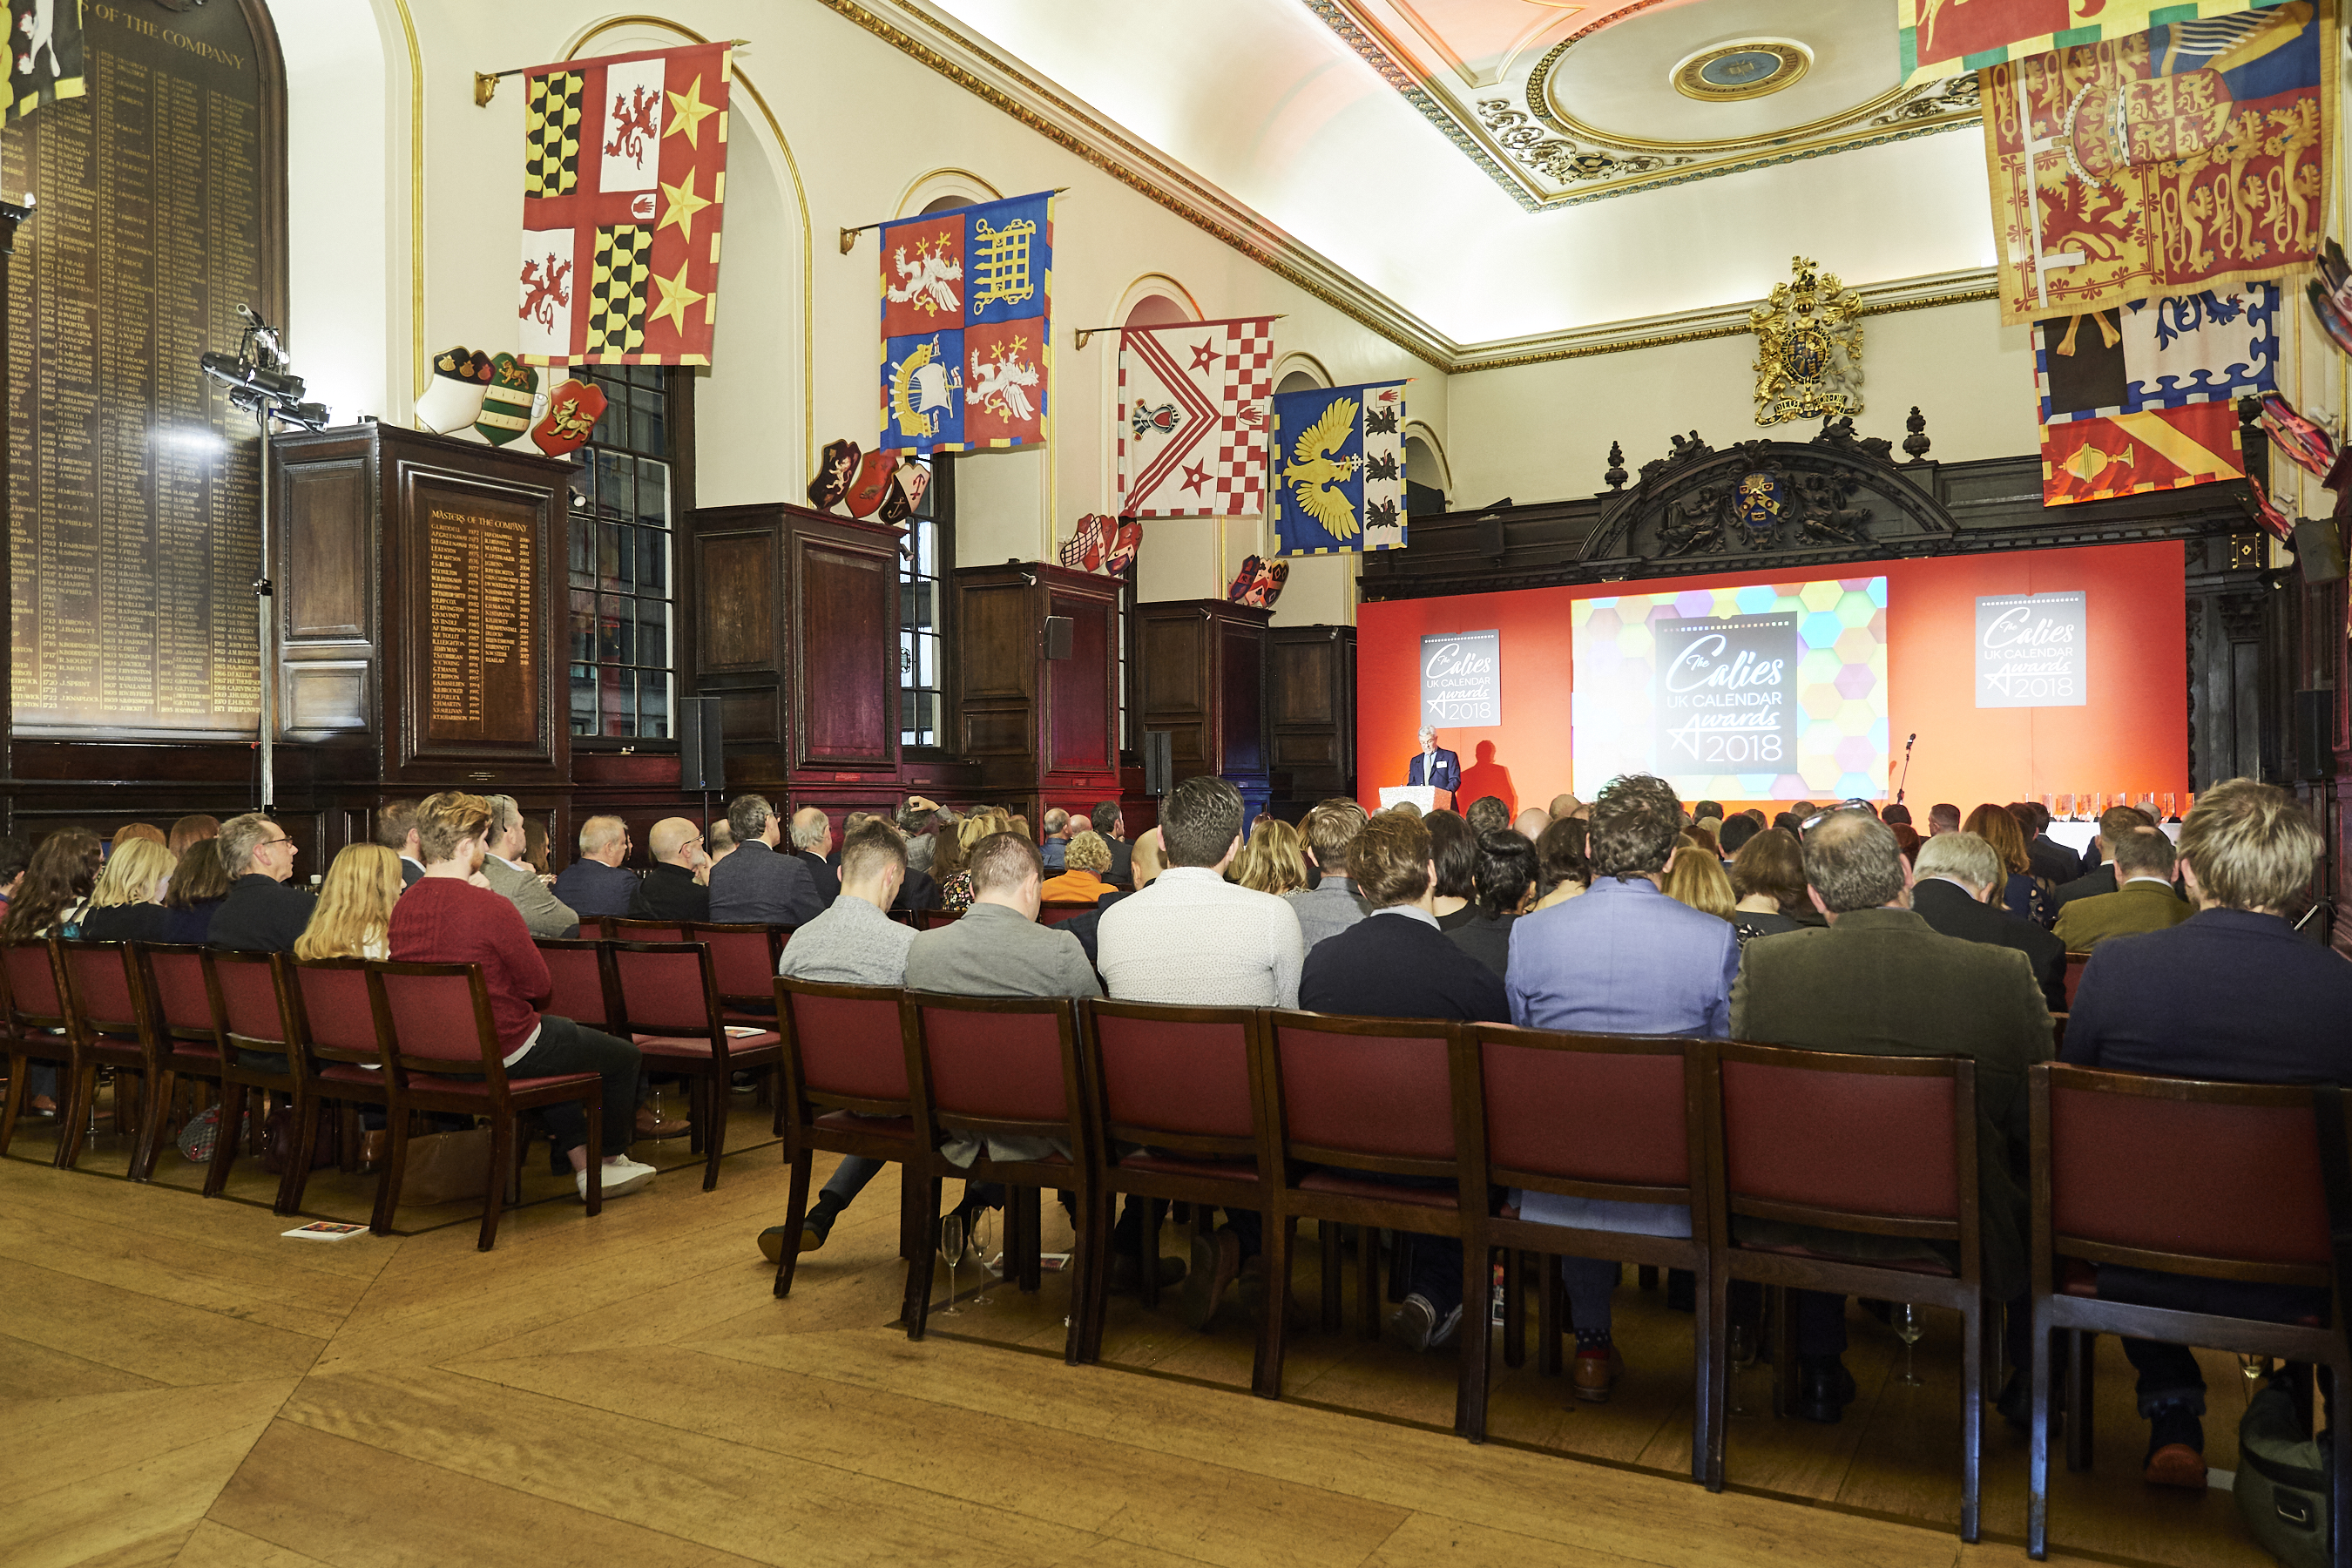 Above:The Calies 2019 will once again take place at Stationers' Hall.